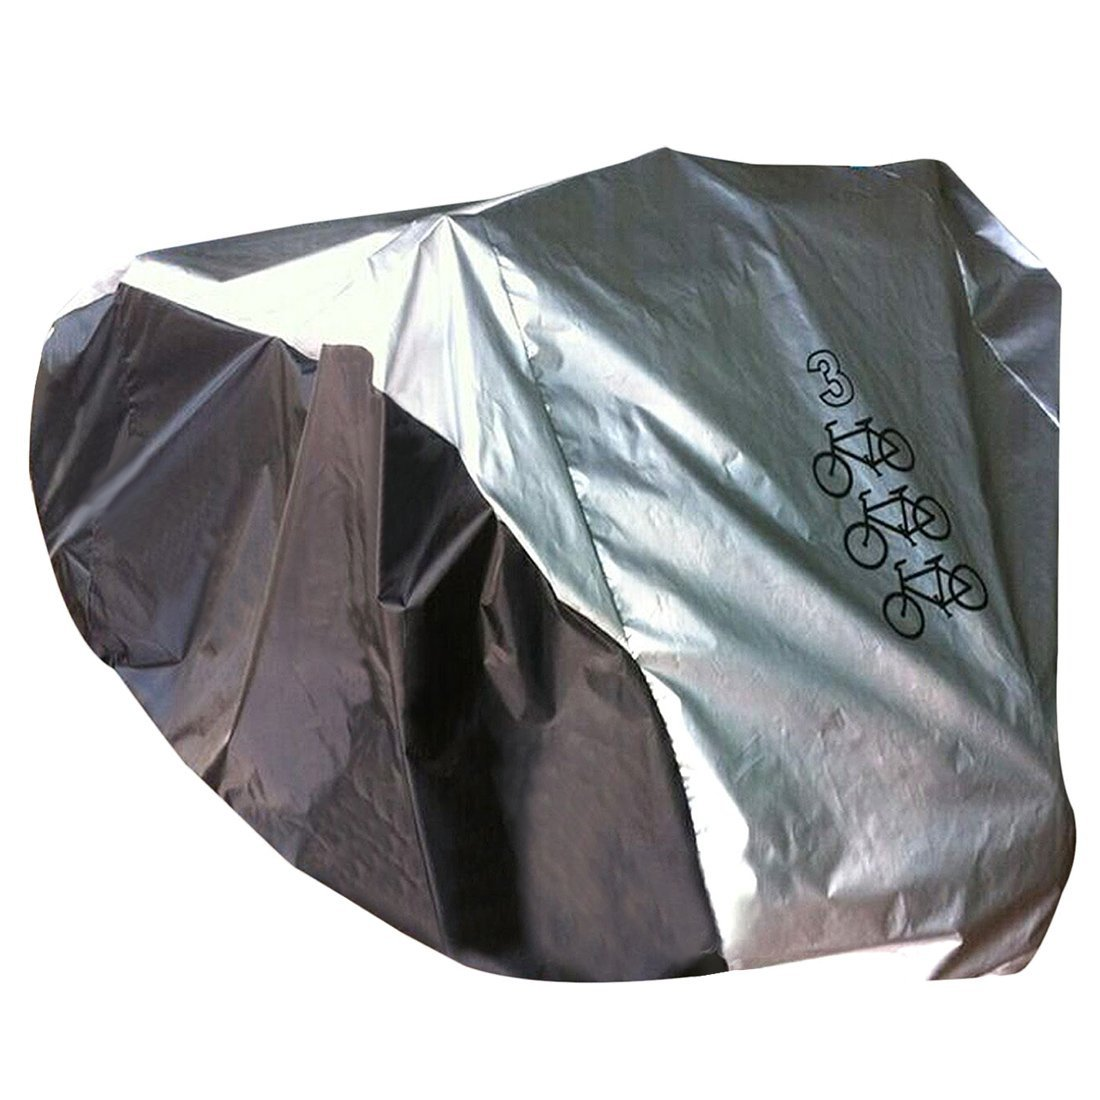 Bicycle Rainproof Dust Cover - SODIAL(R) Waterproof Triple 3 Bike Nylon Bicycle Cycle Scooter Dust Resistant Rain Cover